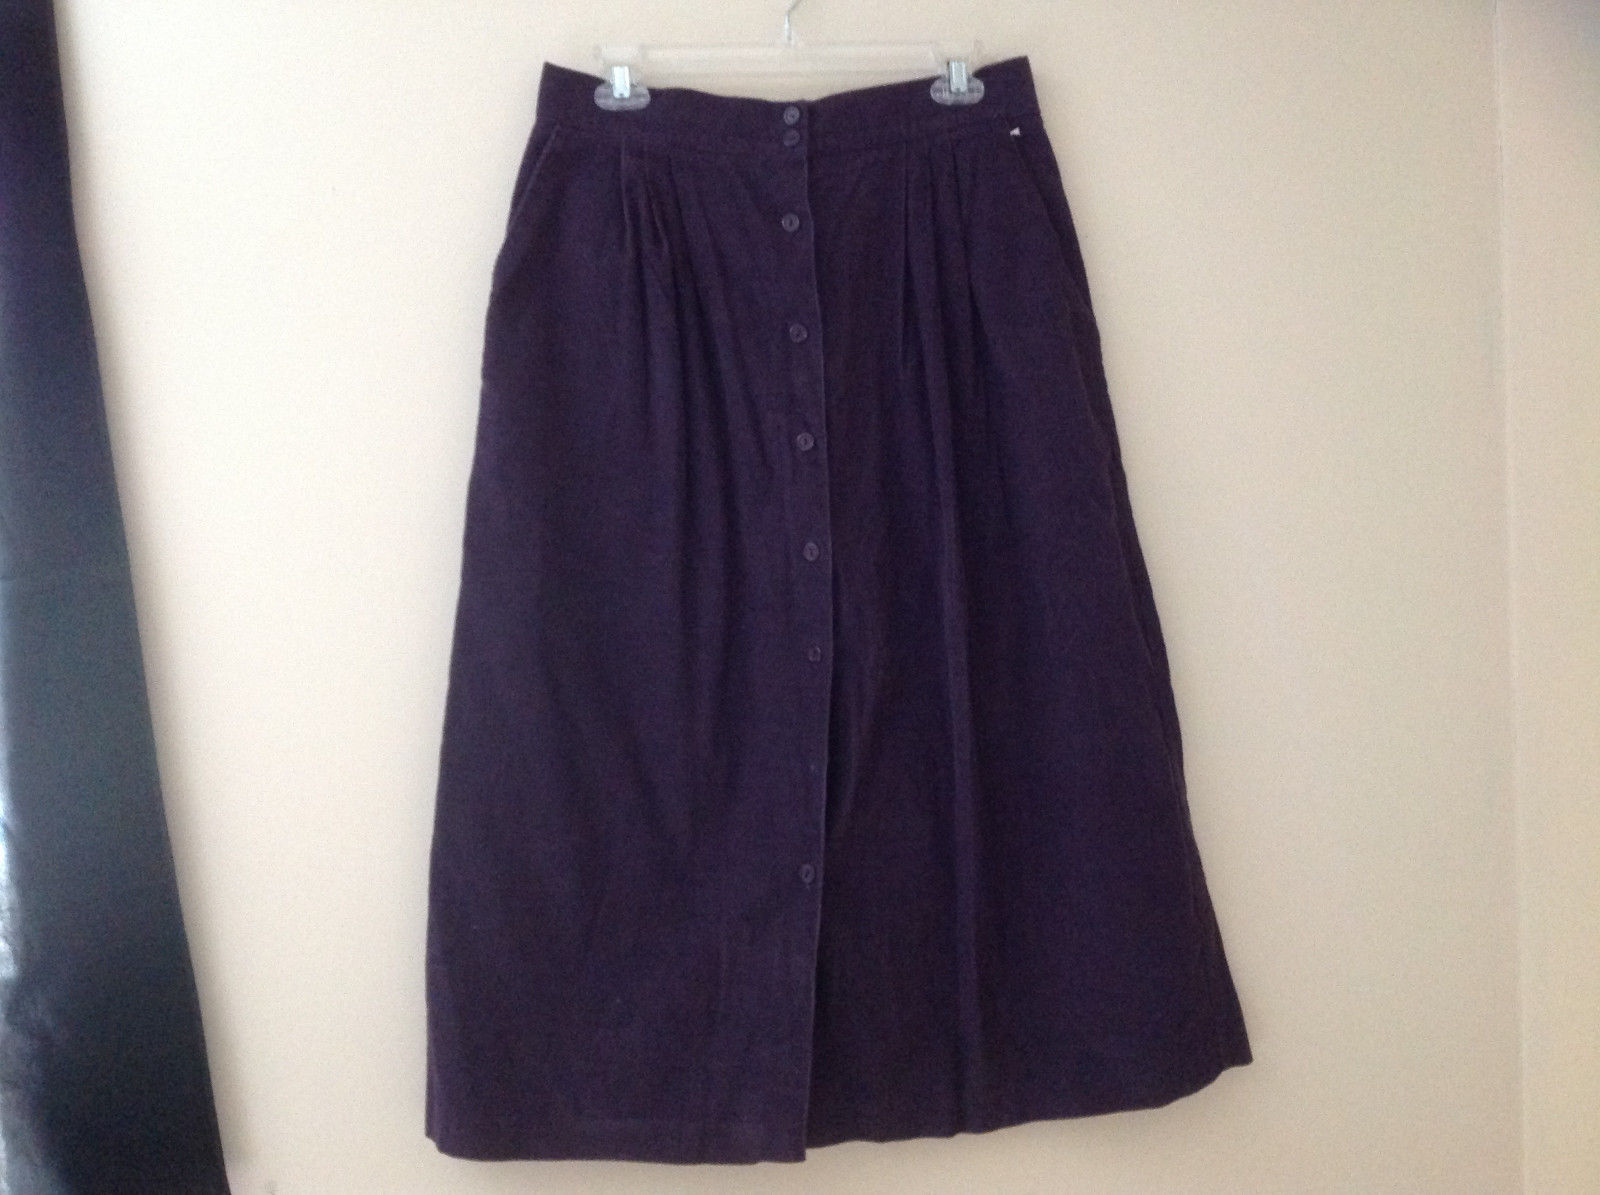 Dark Purple Corduroy Button Up Skirt Angle Length Pleated Pockets NO TAG Size 16